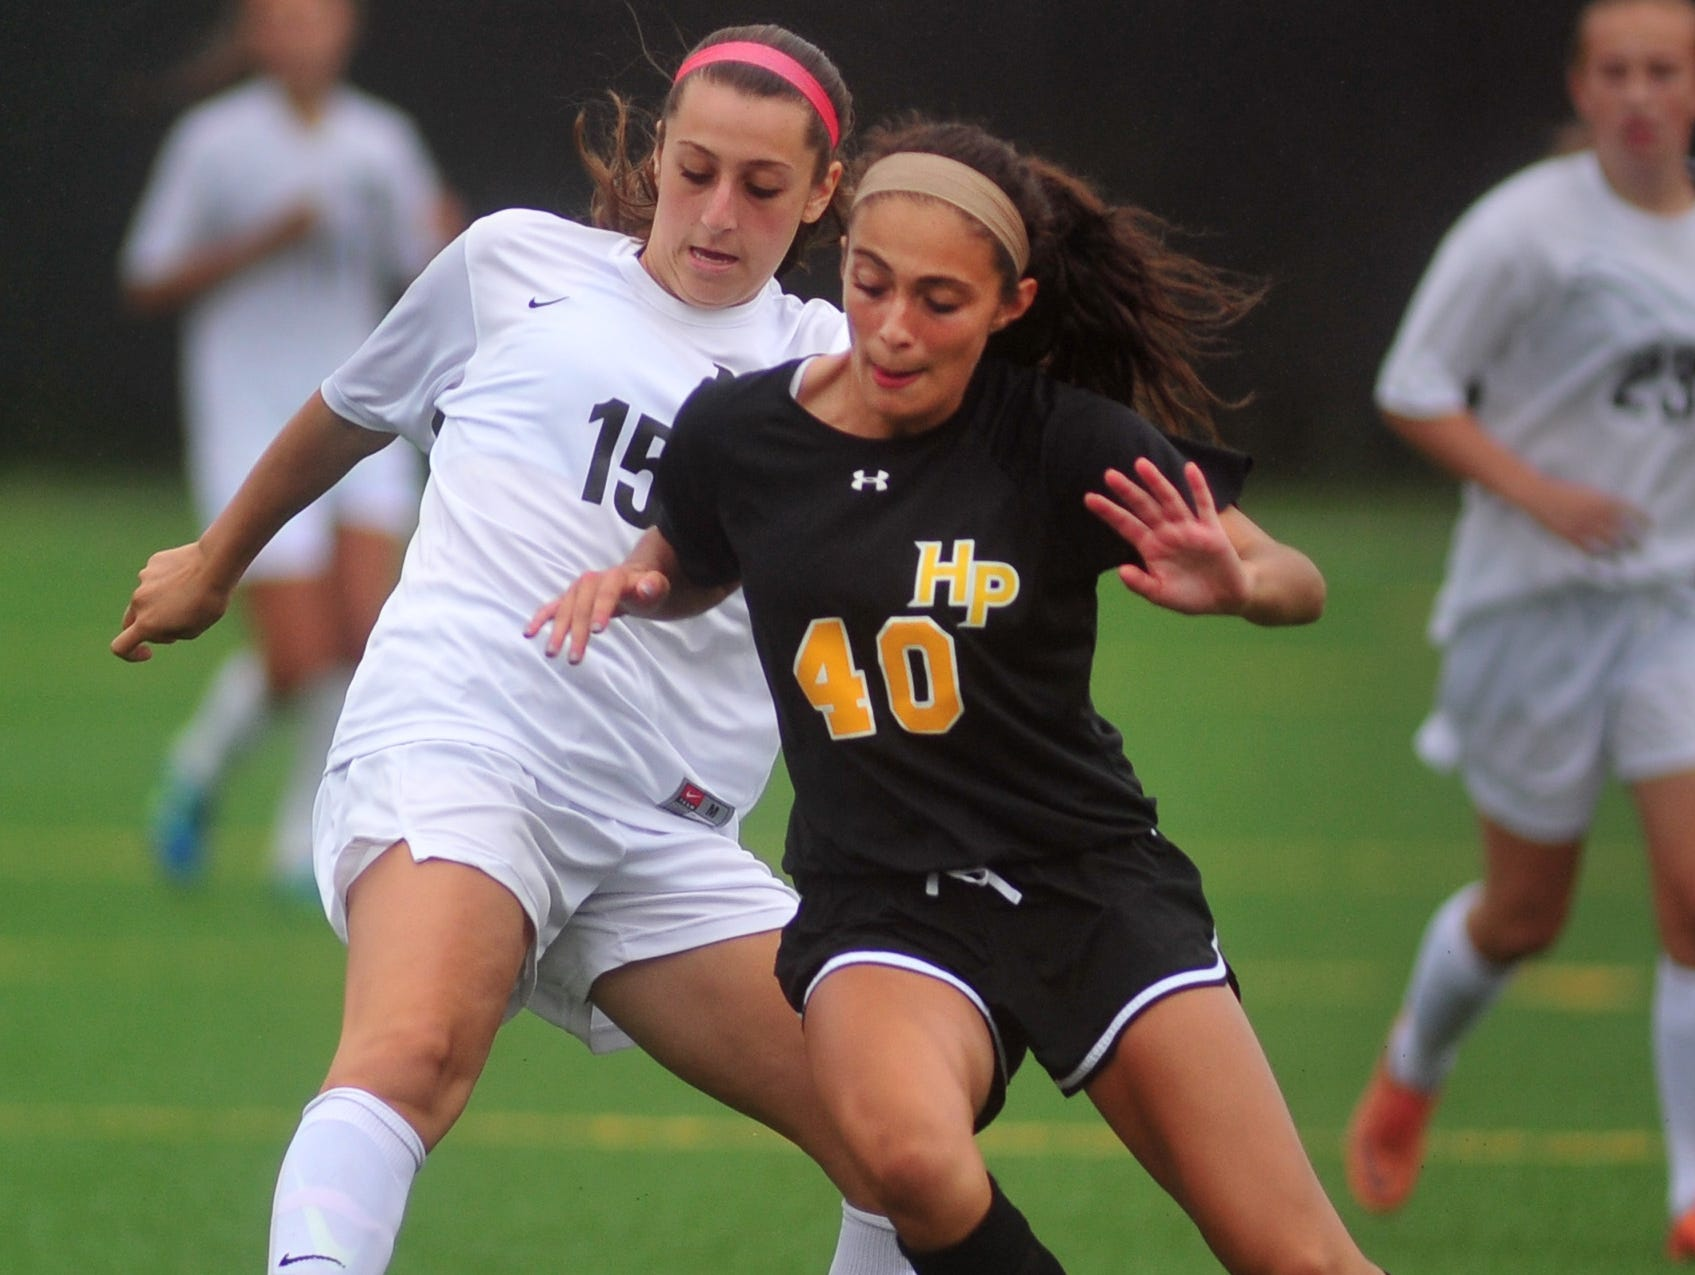 Morristown-Beard's Danielle Kabat gets a foot on the ball in a game against Hanover Park last September.